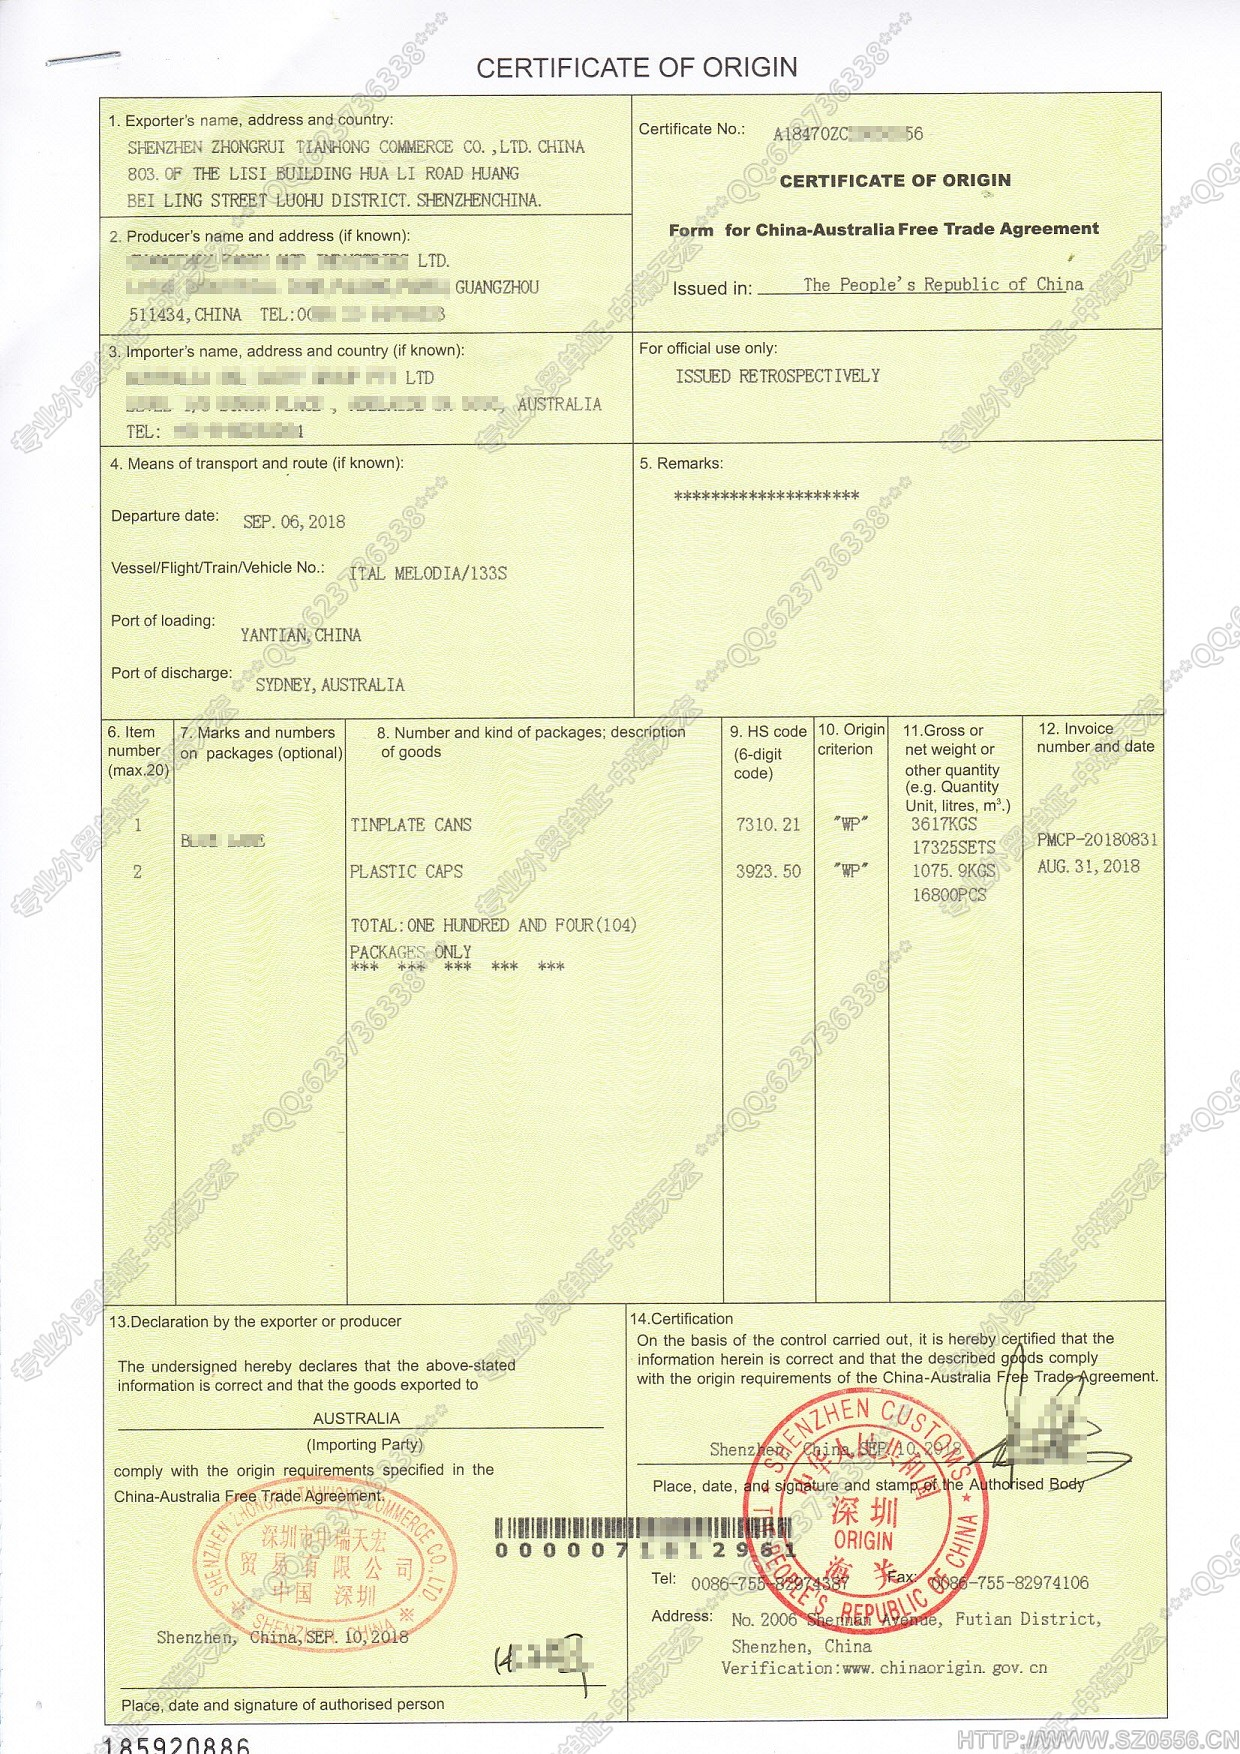 中国-澳大利亚自由贸易协定FTA-CERTIFICATE OF ORIGIN FORM FOR CHINA-AUSTRALIA FREE TRADE AGREE